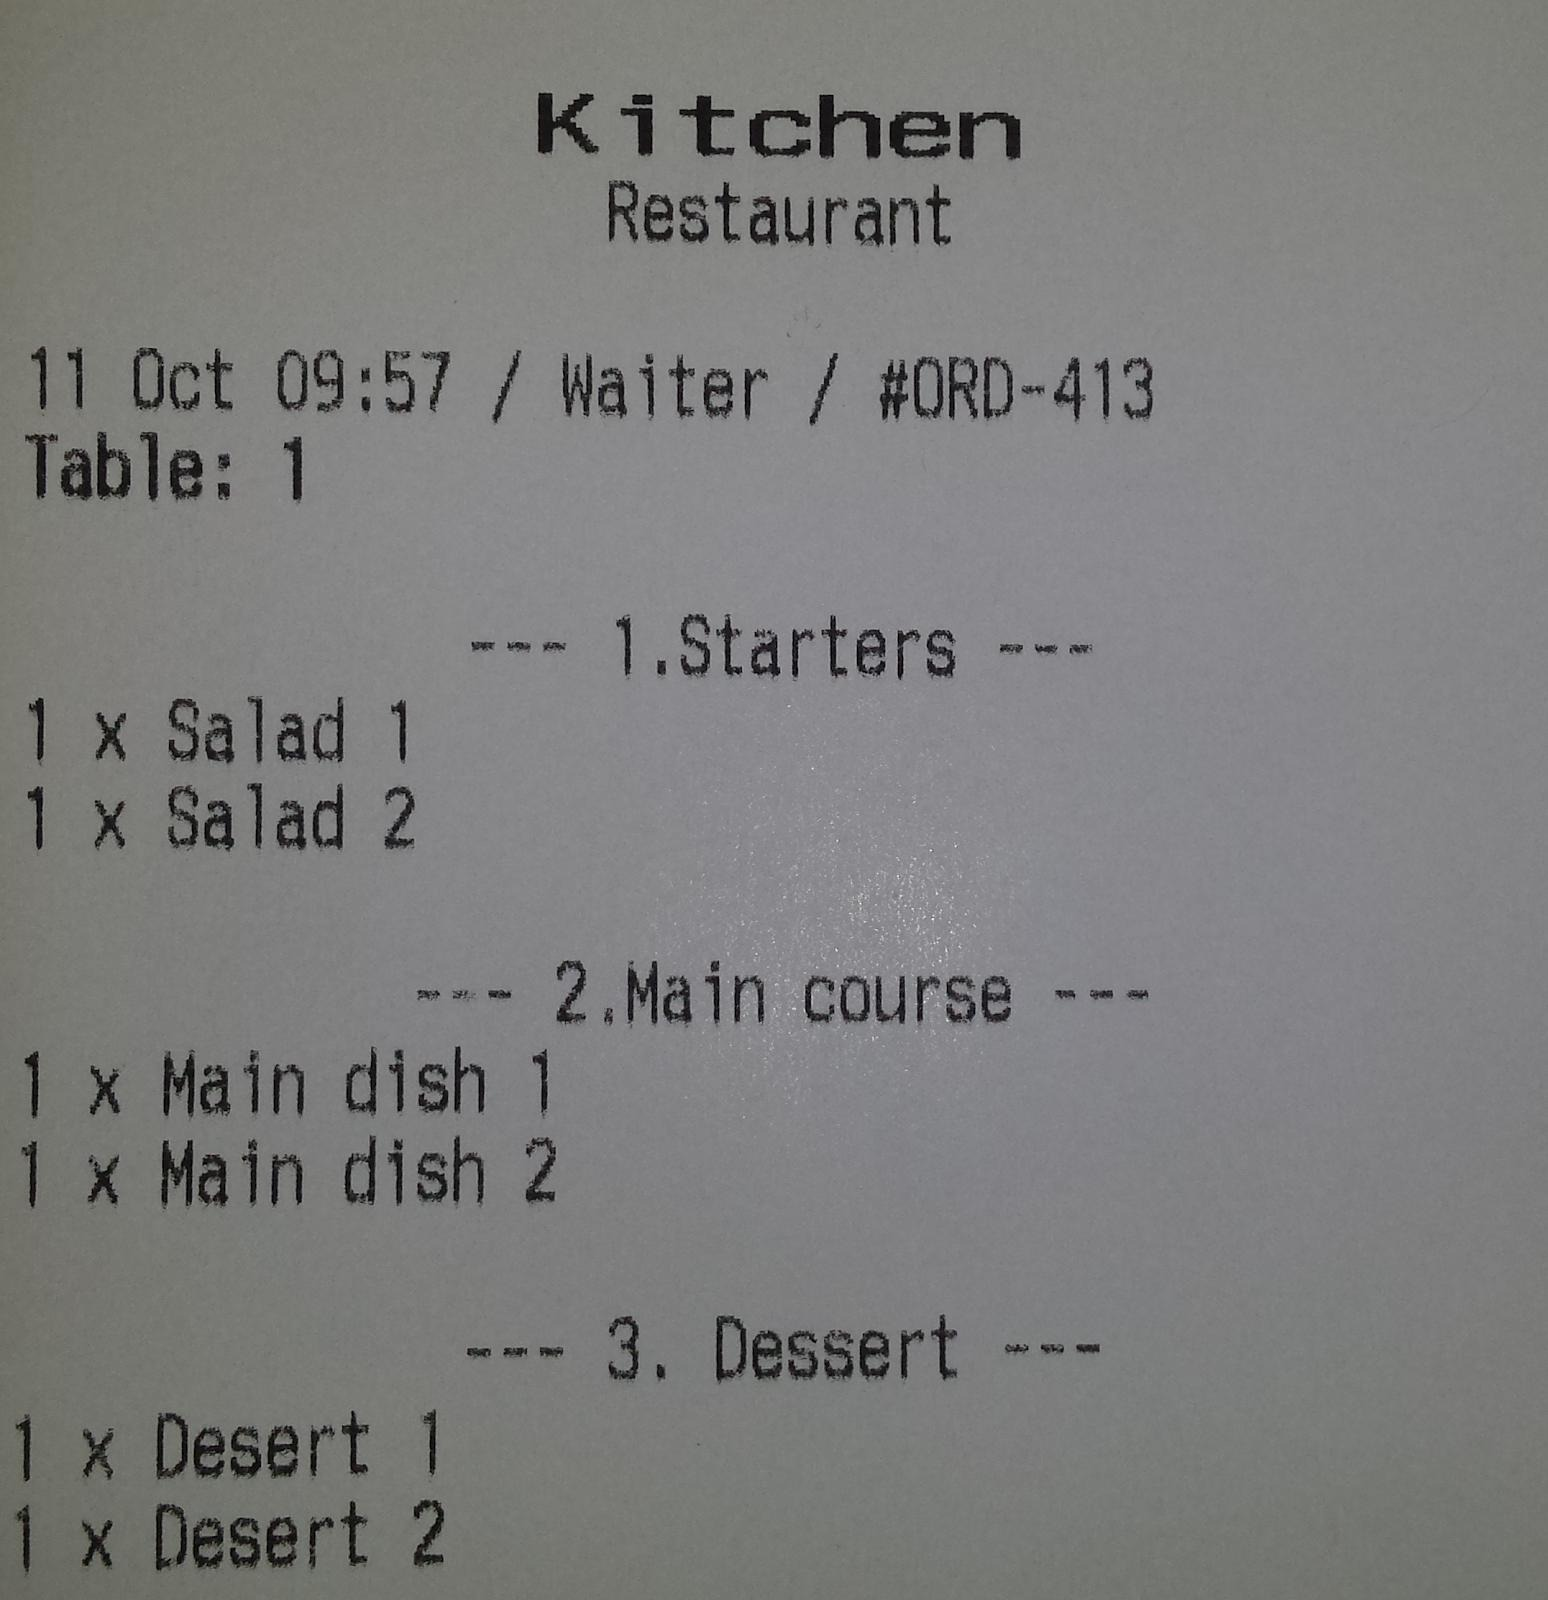 Order groups in Clock POS